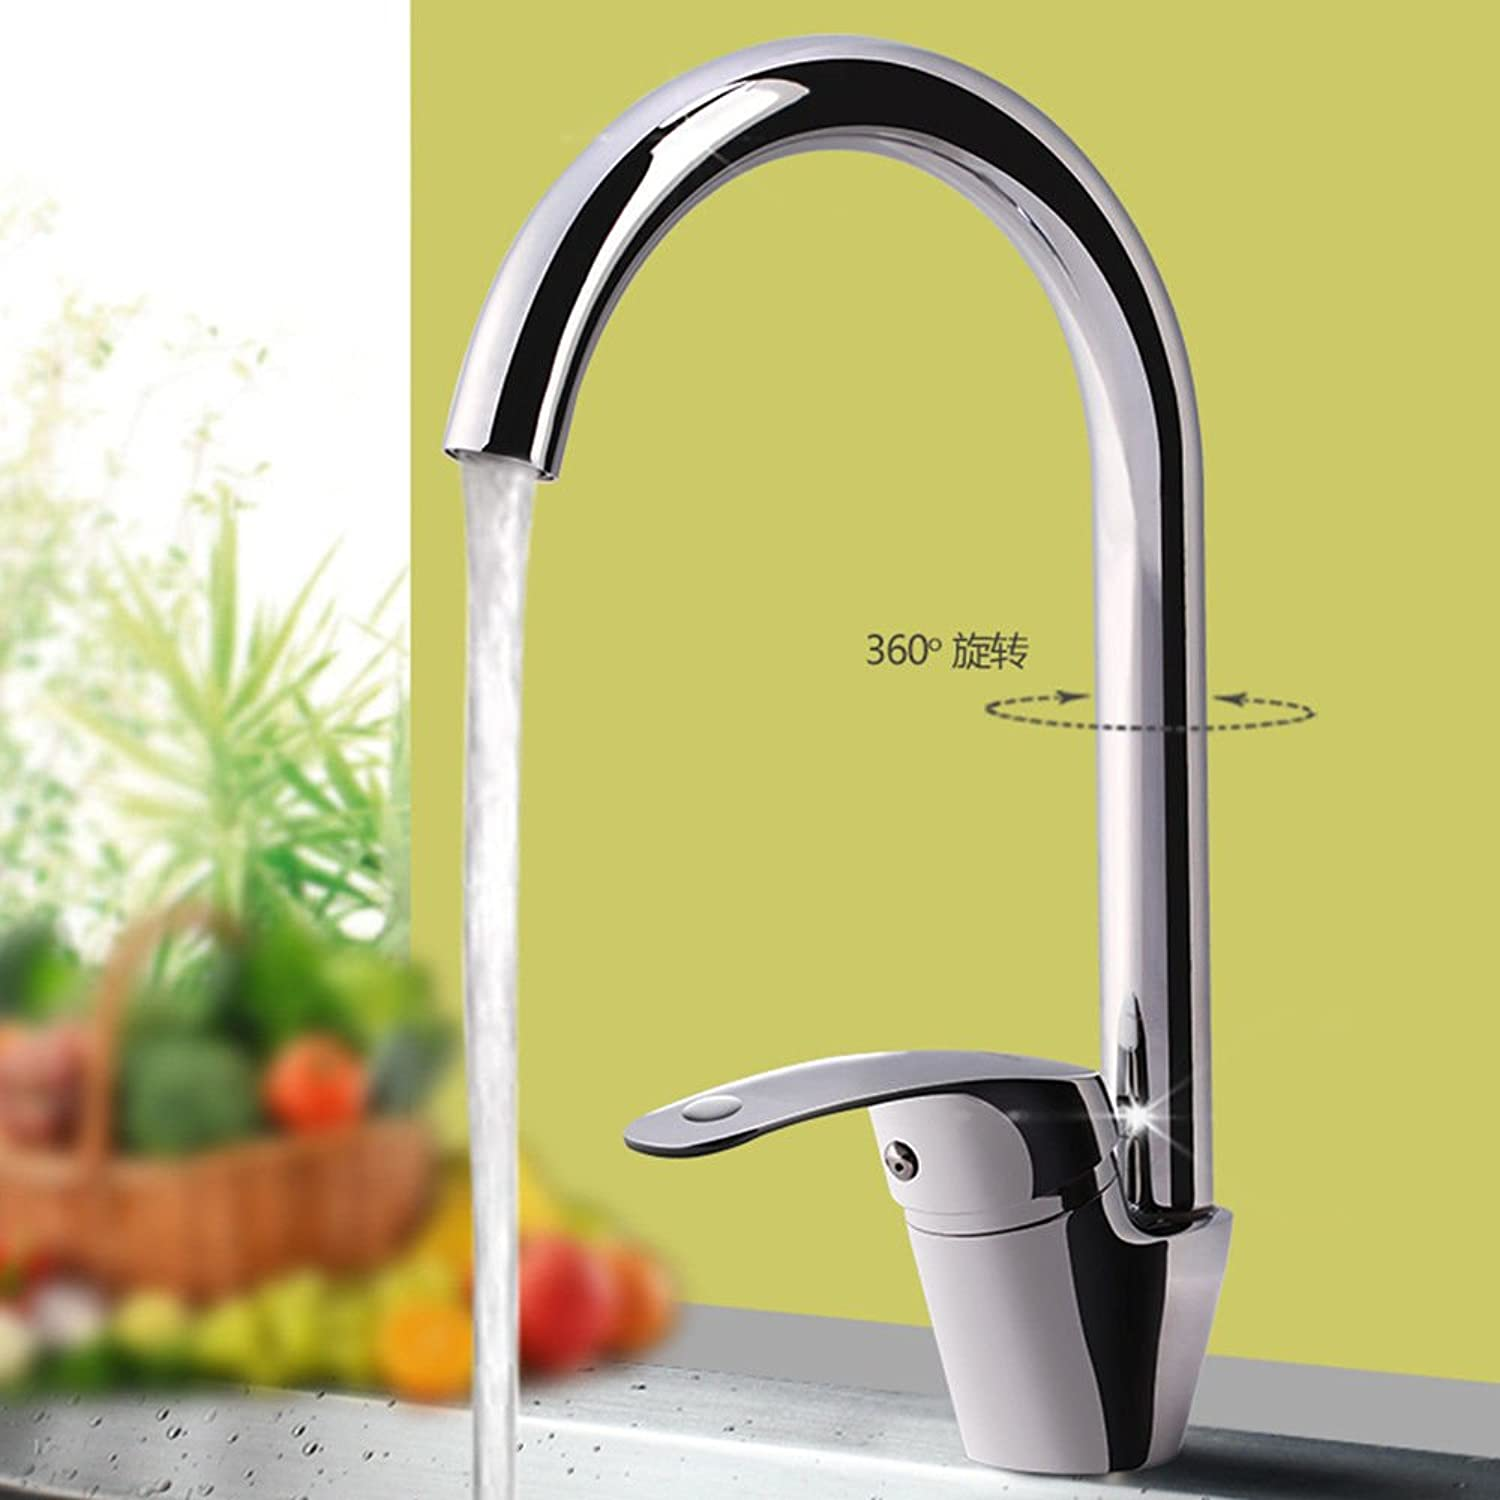 Gyps Faucet Single-Lever Washbasin Mixer Tap Tap Tap Kitchen Household Water Connection Sink Tap Bowl Cold Water Sink Tap Brass Tap B Z